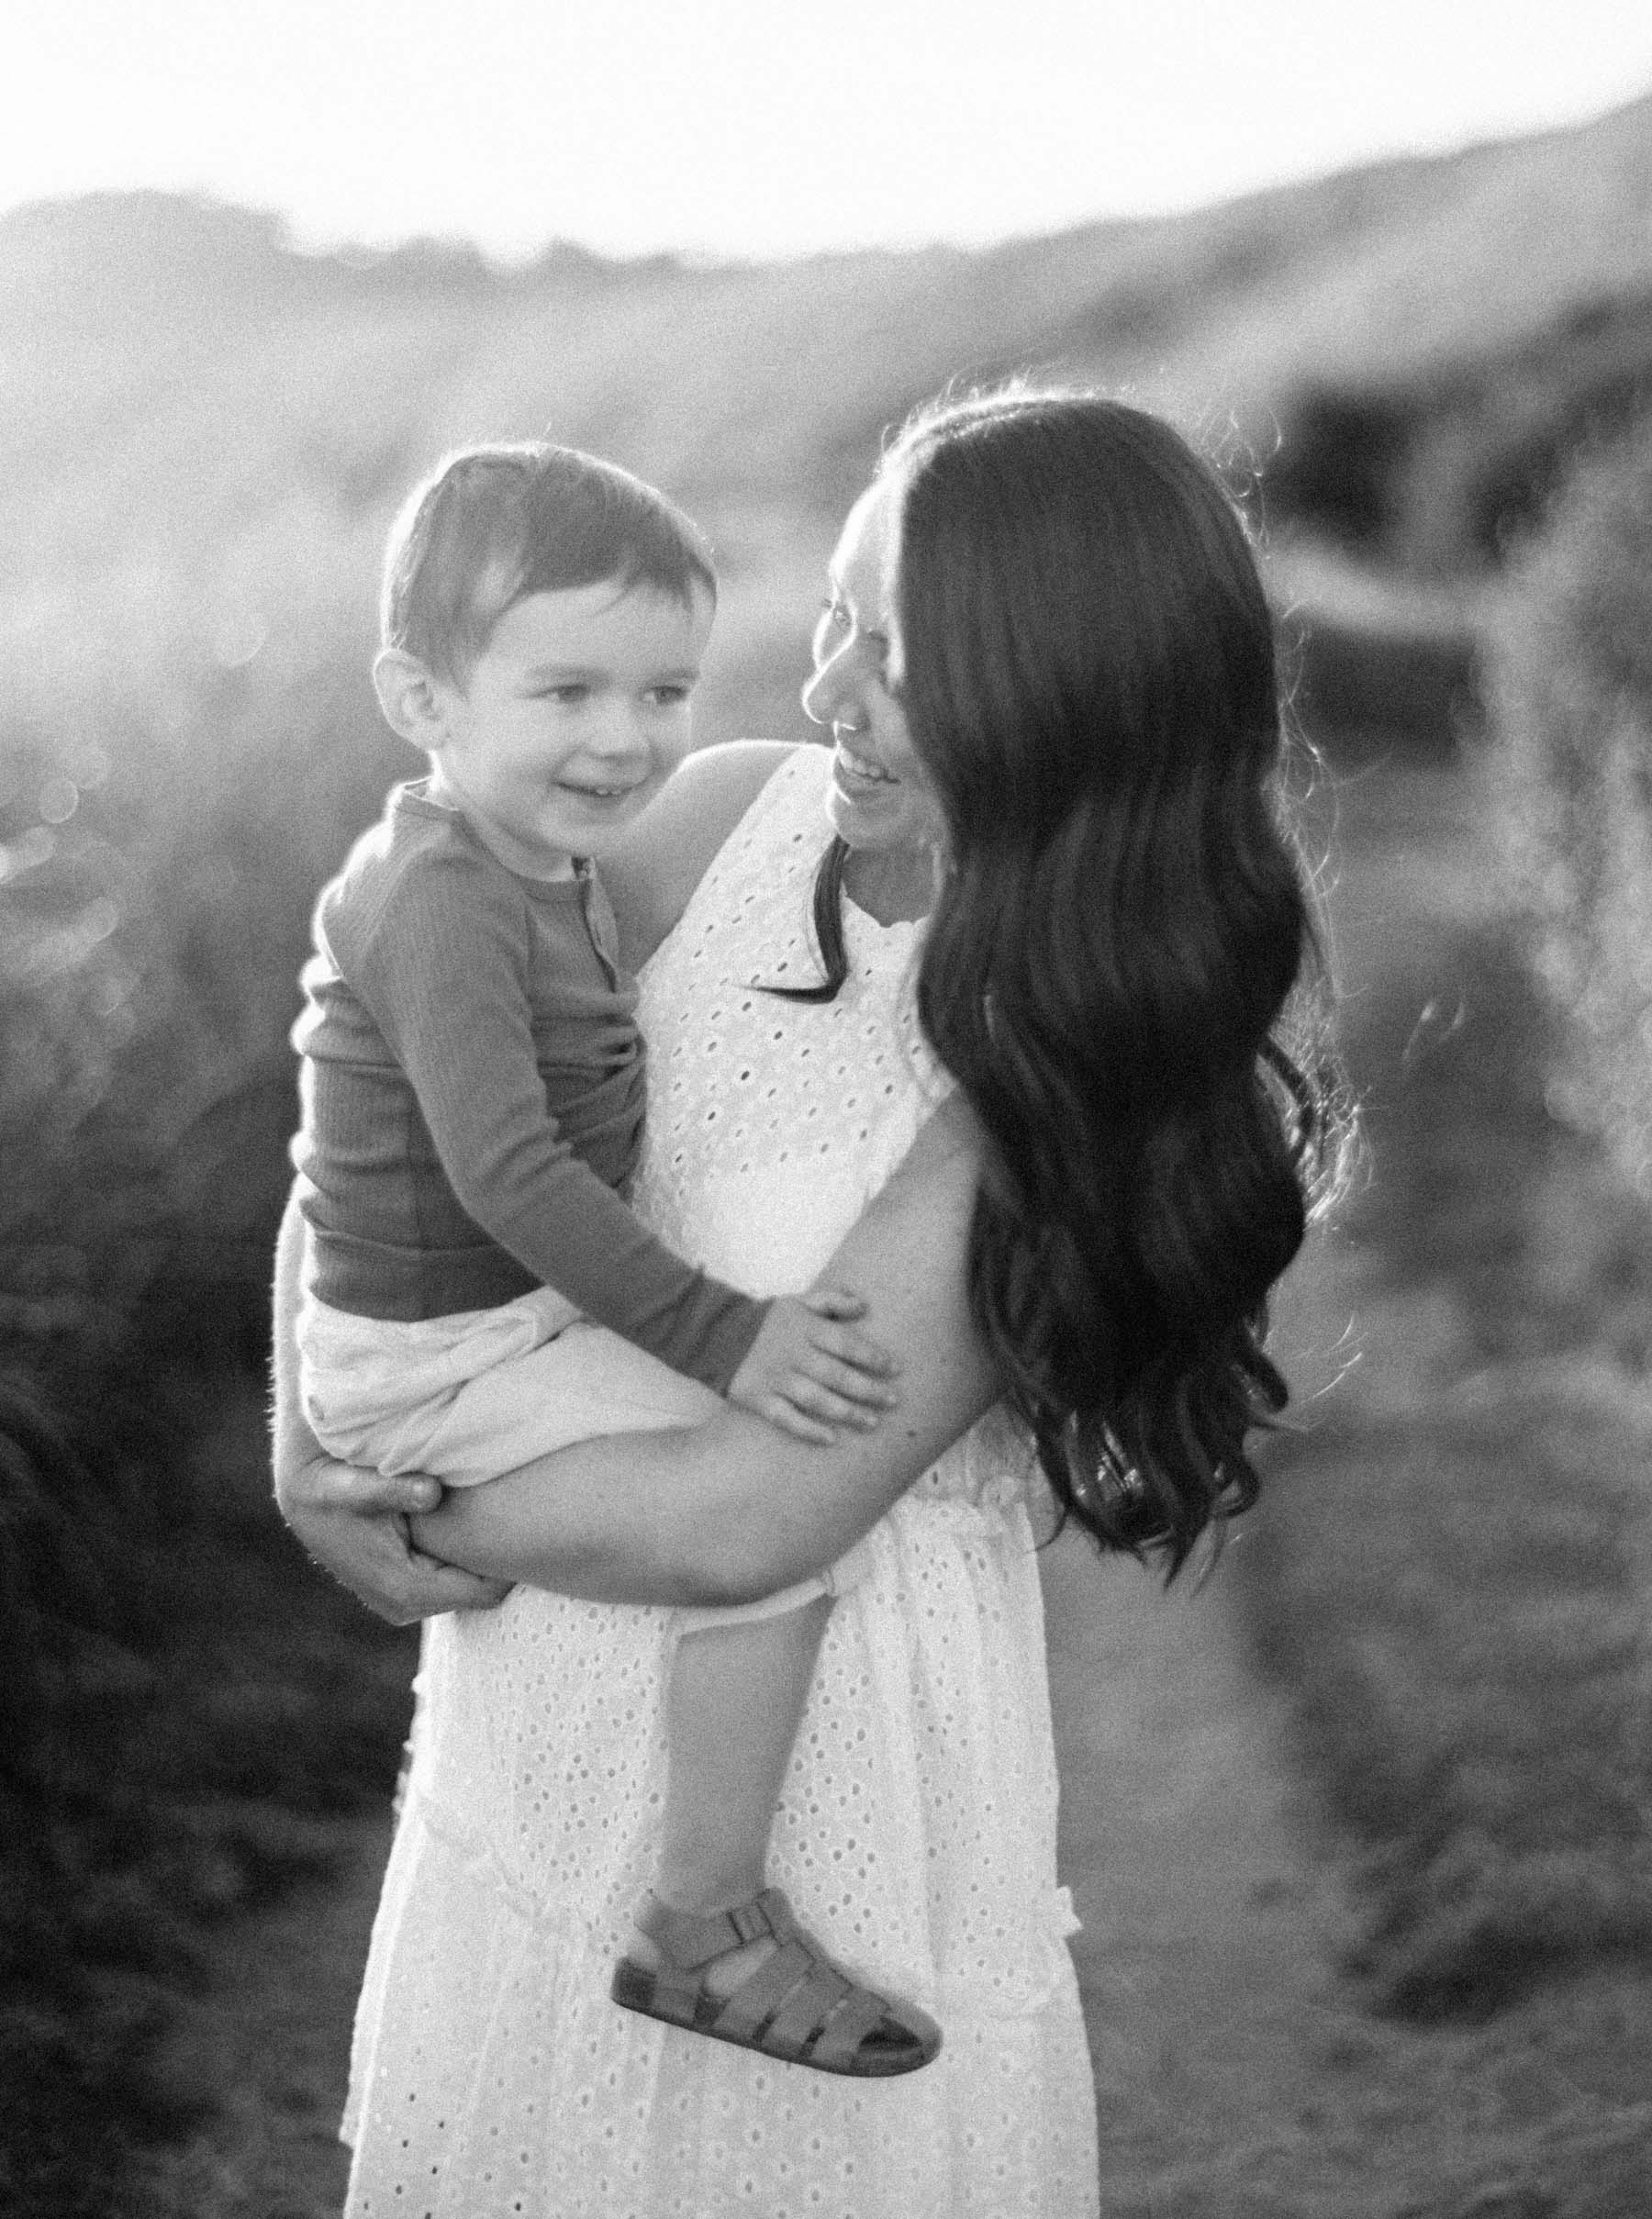 Mom and son captured on classic black and white film by top Seattle family photographer Anna Peters